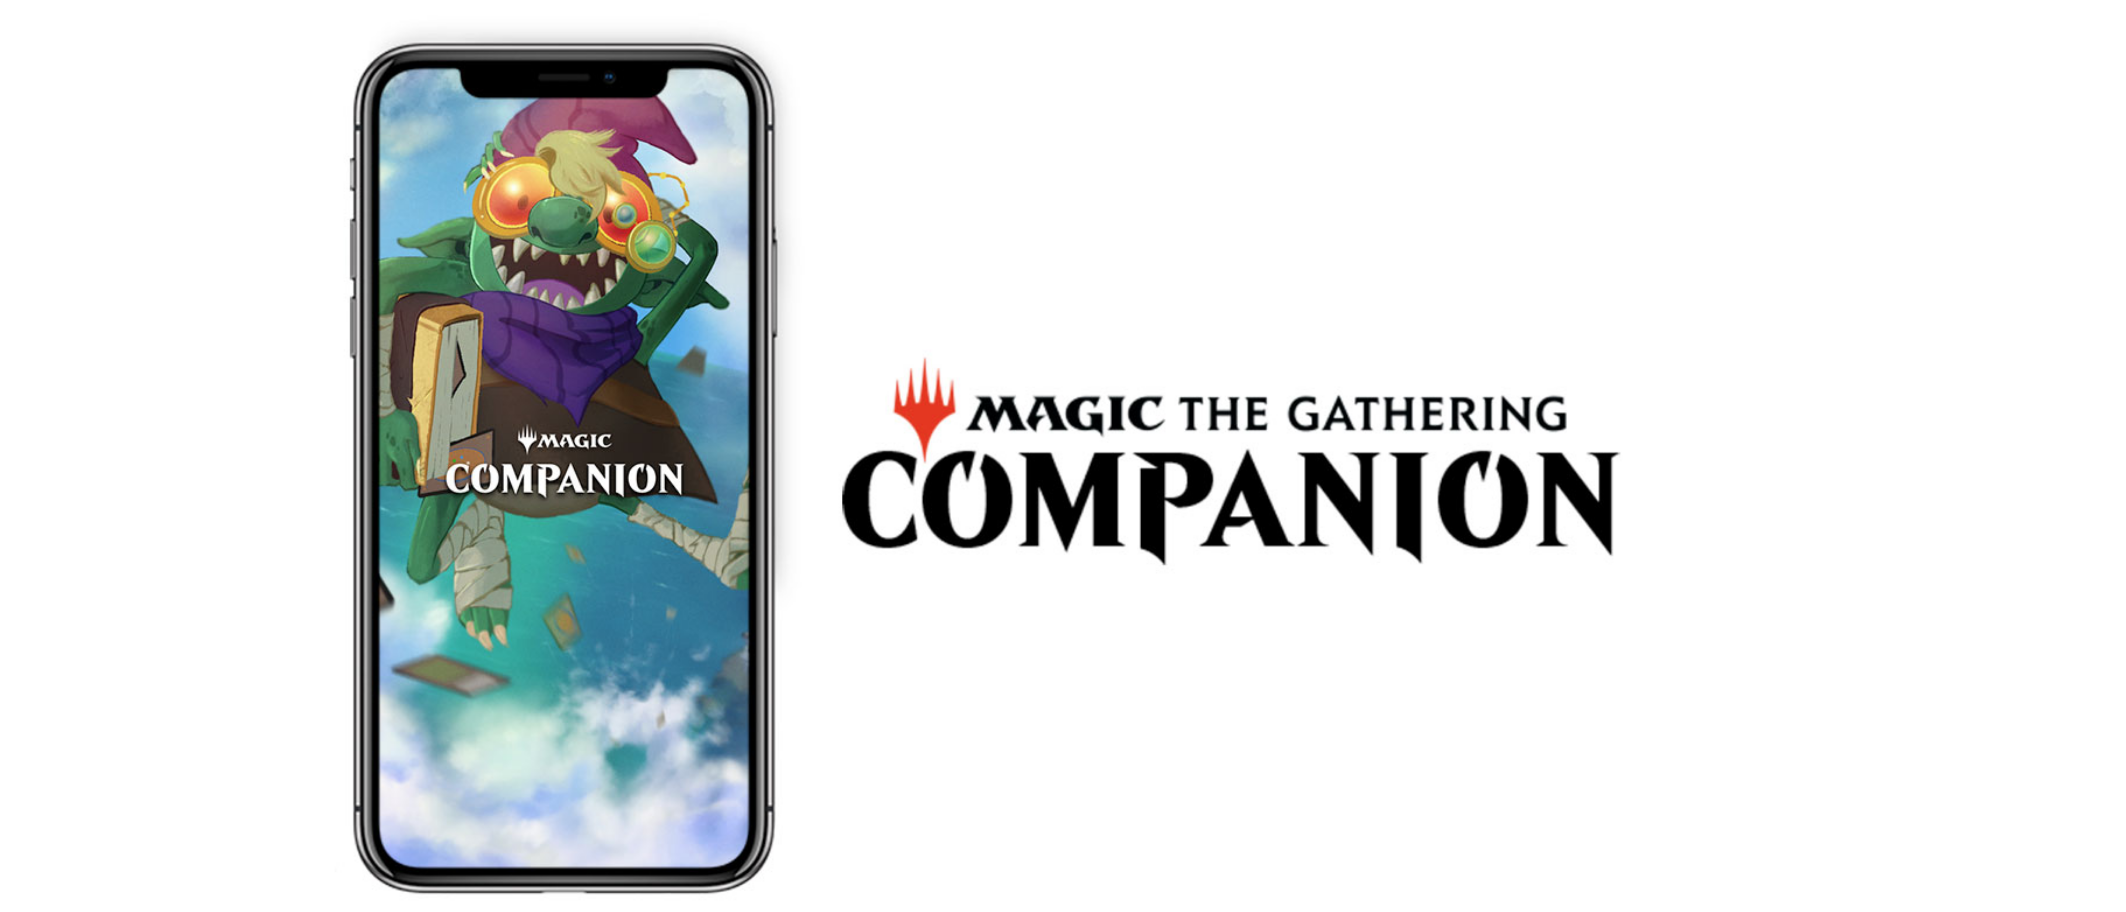 The Official Magic: The Gathering Companion App is Now